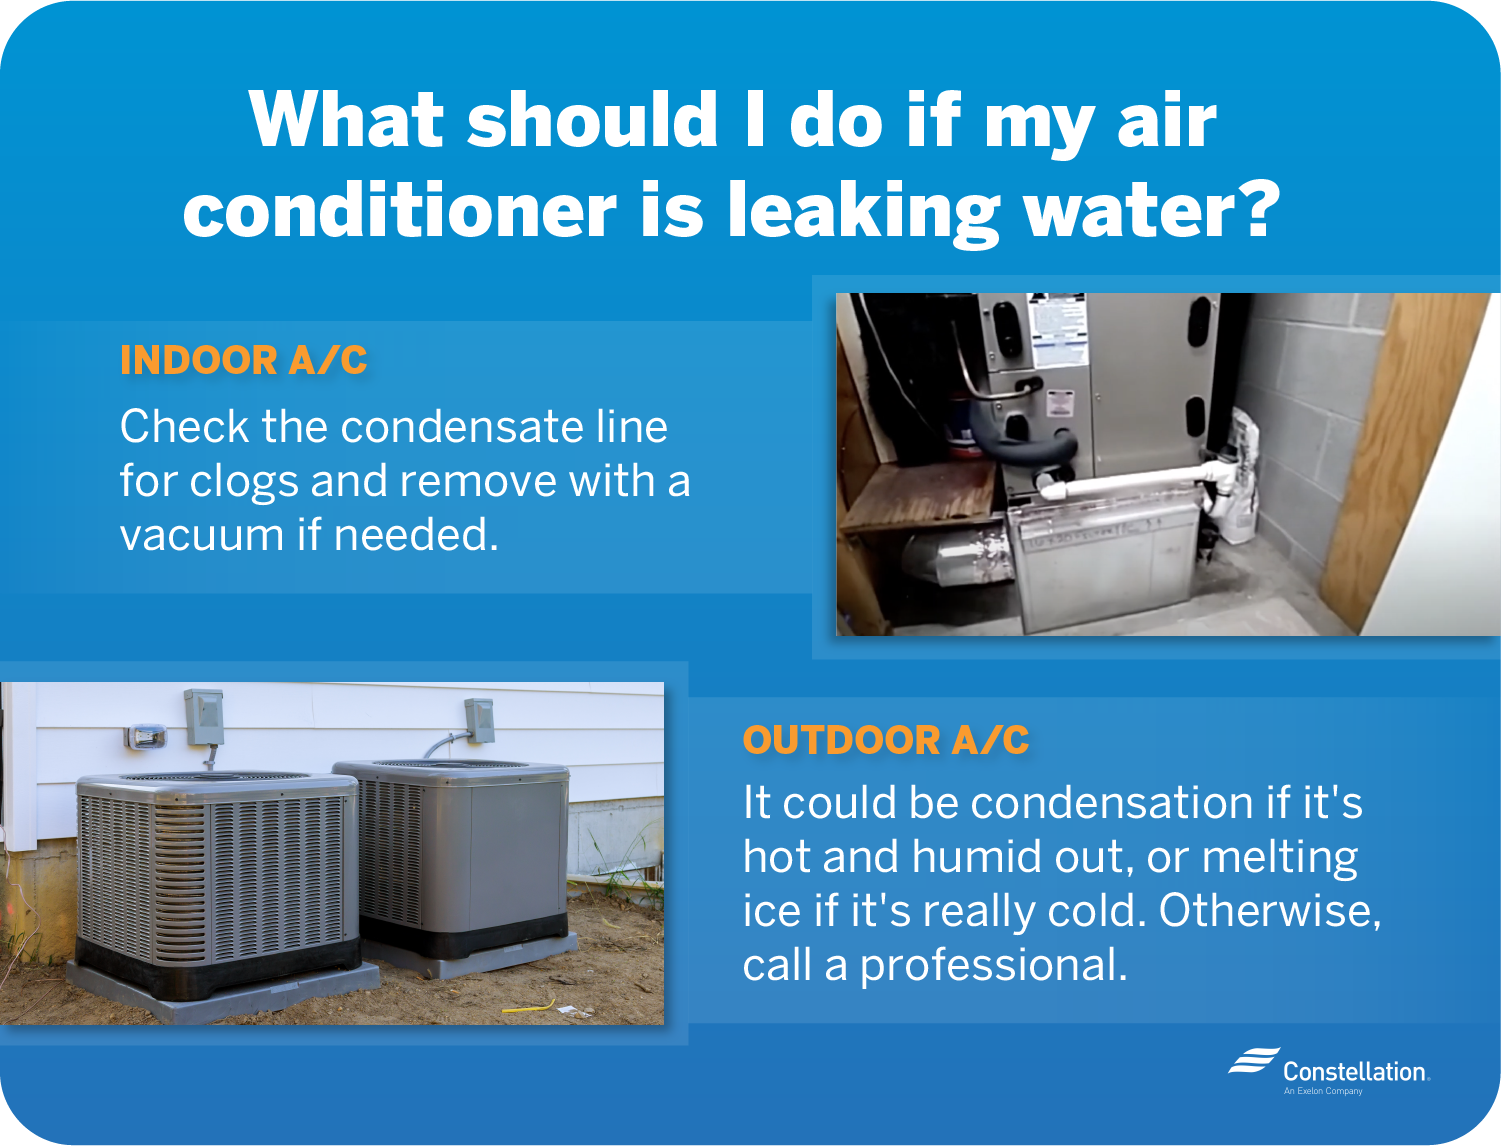 What should I do if my air conditioner is leaking water?